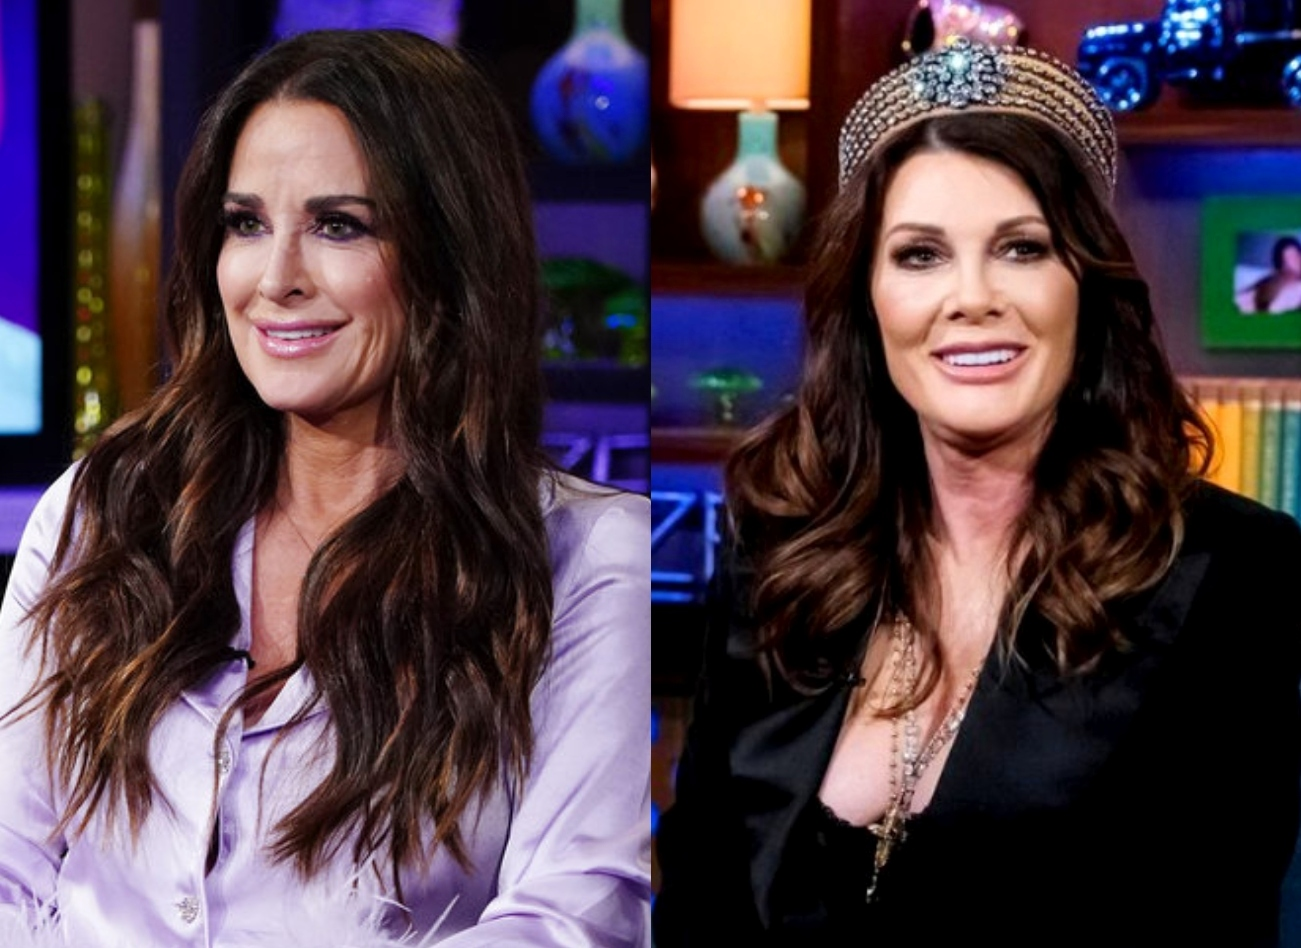 """RHOBH's Kyle Richards Shades LVP's Claims of Spreading Erika Rumors and Suggests Relevance is """"Fading"""" as LVP Claps Back With Re-Tweet About Lies and Deflection"""